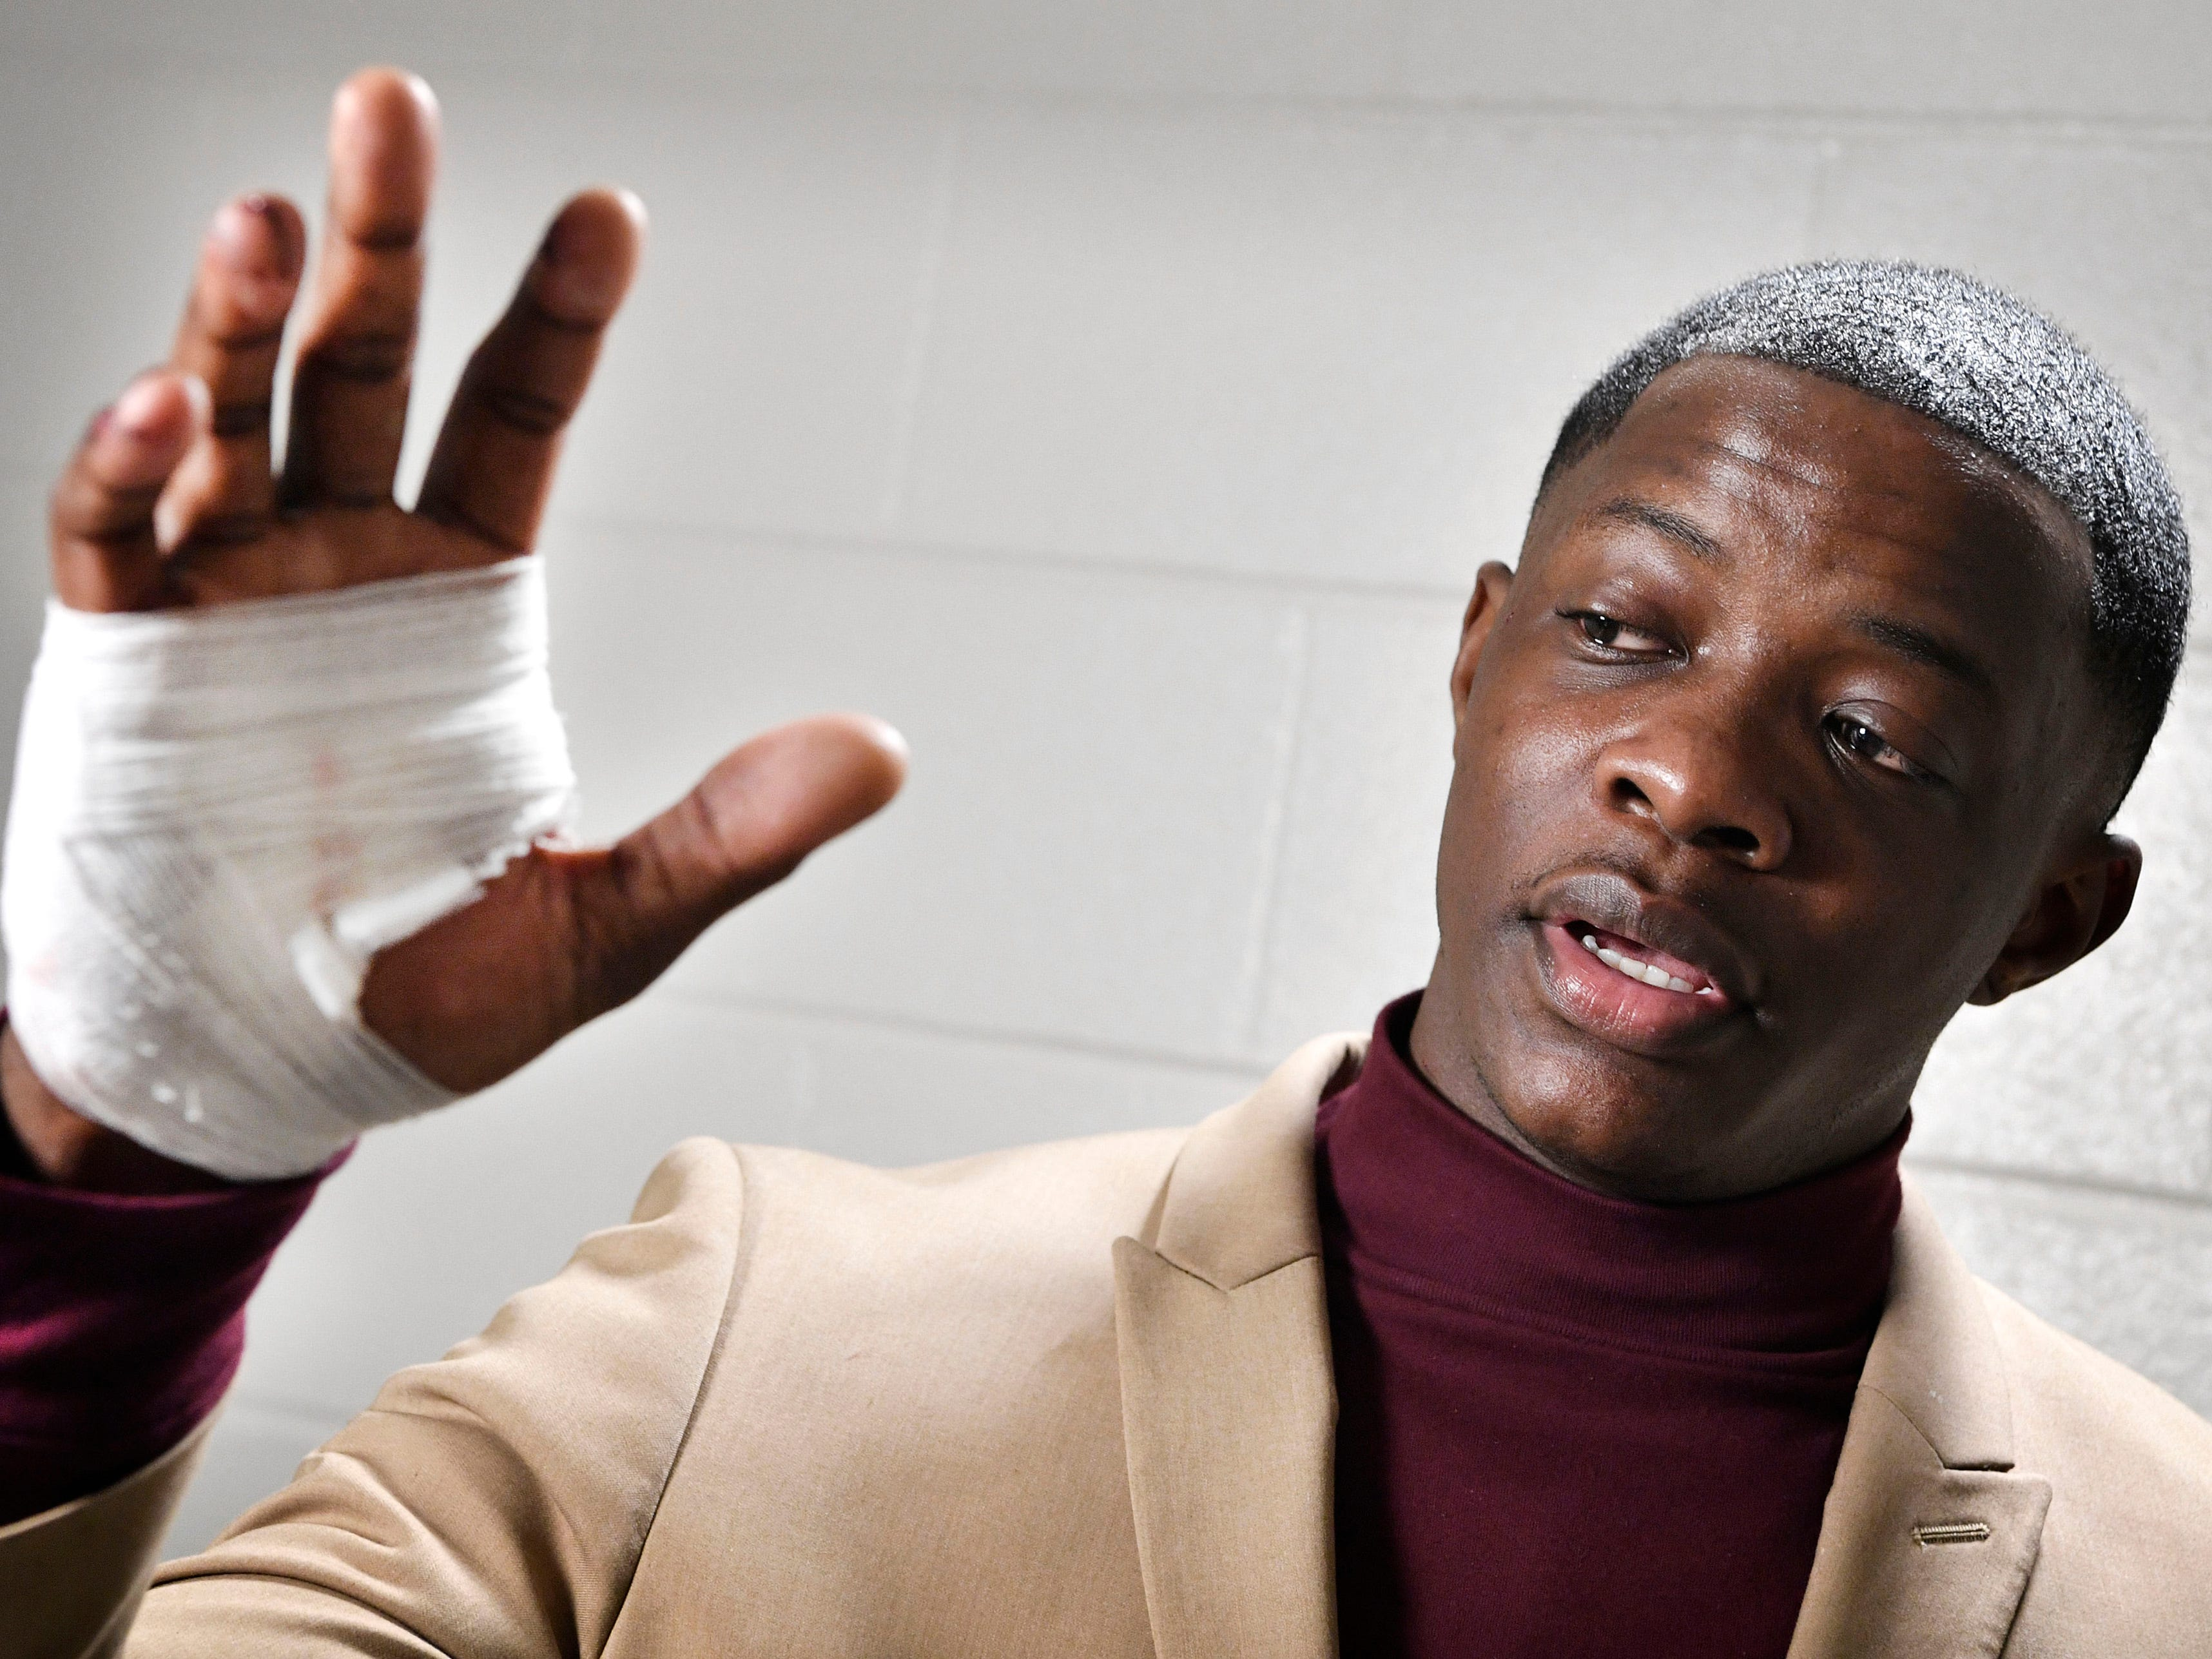 James Shaw Jr., 29, shows his hand that was injured when he disarmed a shooter inside an Antioch Waffle House, Sunday, April 22, 2018, in Nashville, Tenn